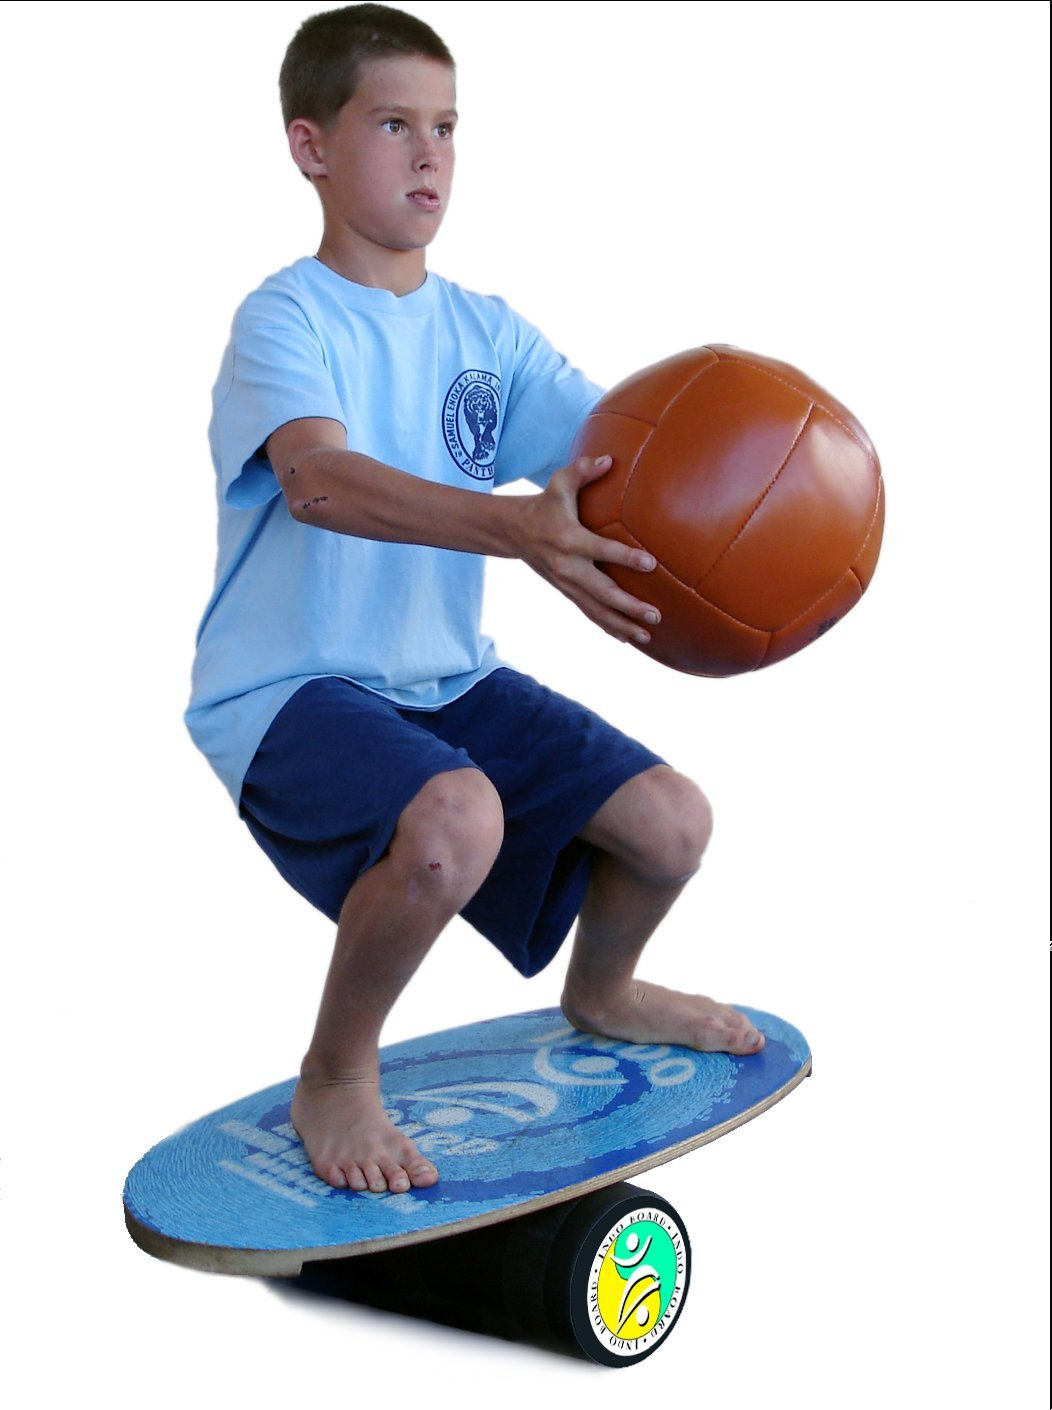 INDO BOARD Rocker Balance Board Package Ages, Improve Balance, Comes with 33'' X 15'' Non-Slip Deck 6.5'' Roller and 14'' Cushion - Aqua Blue by INDO BOARD (Image #6)